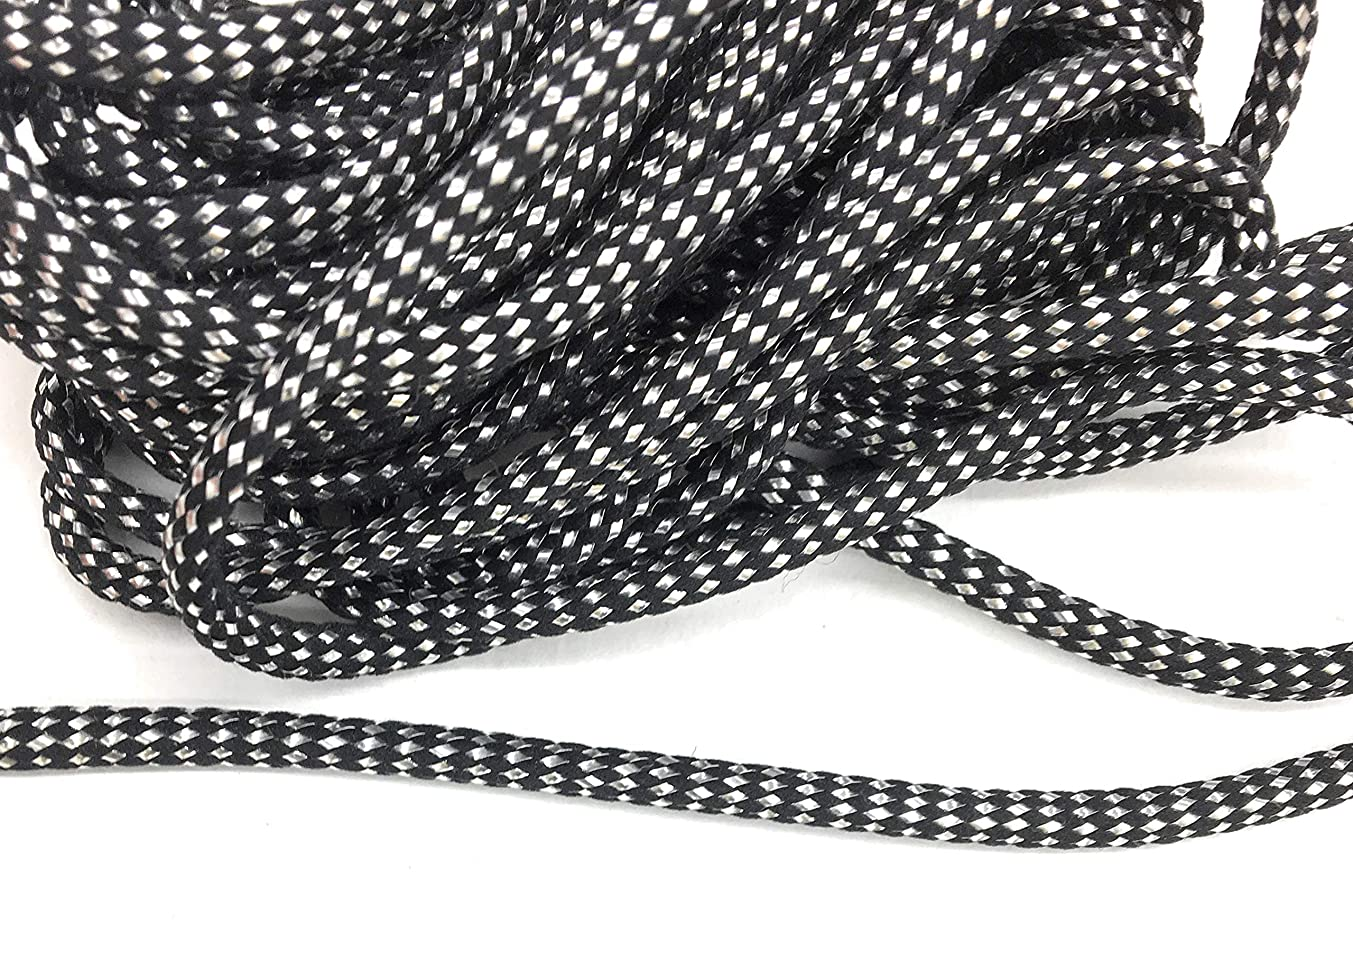 Weave BLACK CORD with SILVER Metallic Trims 5/32